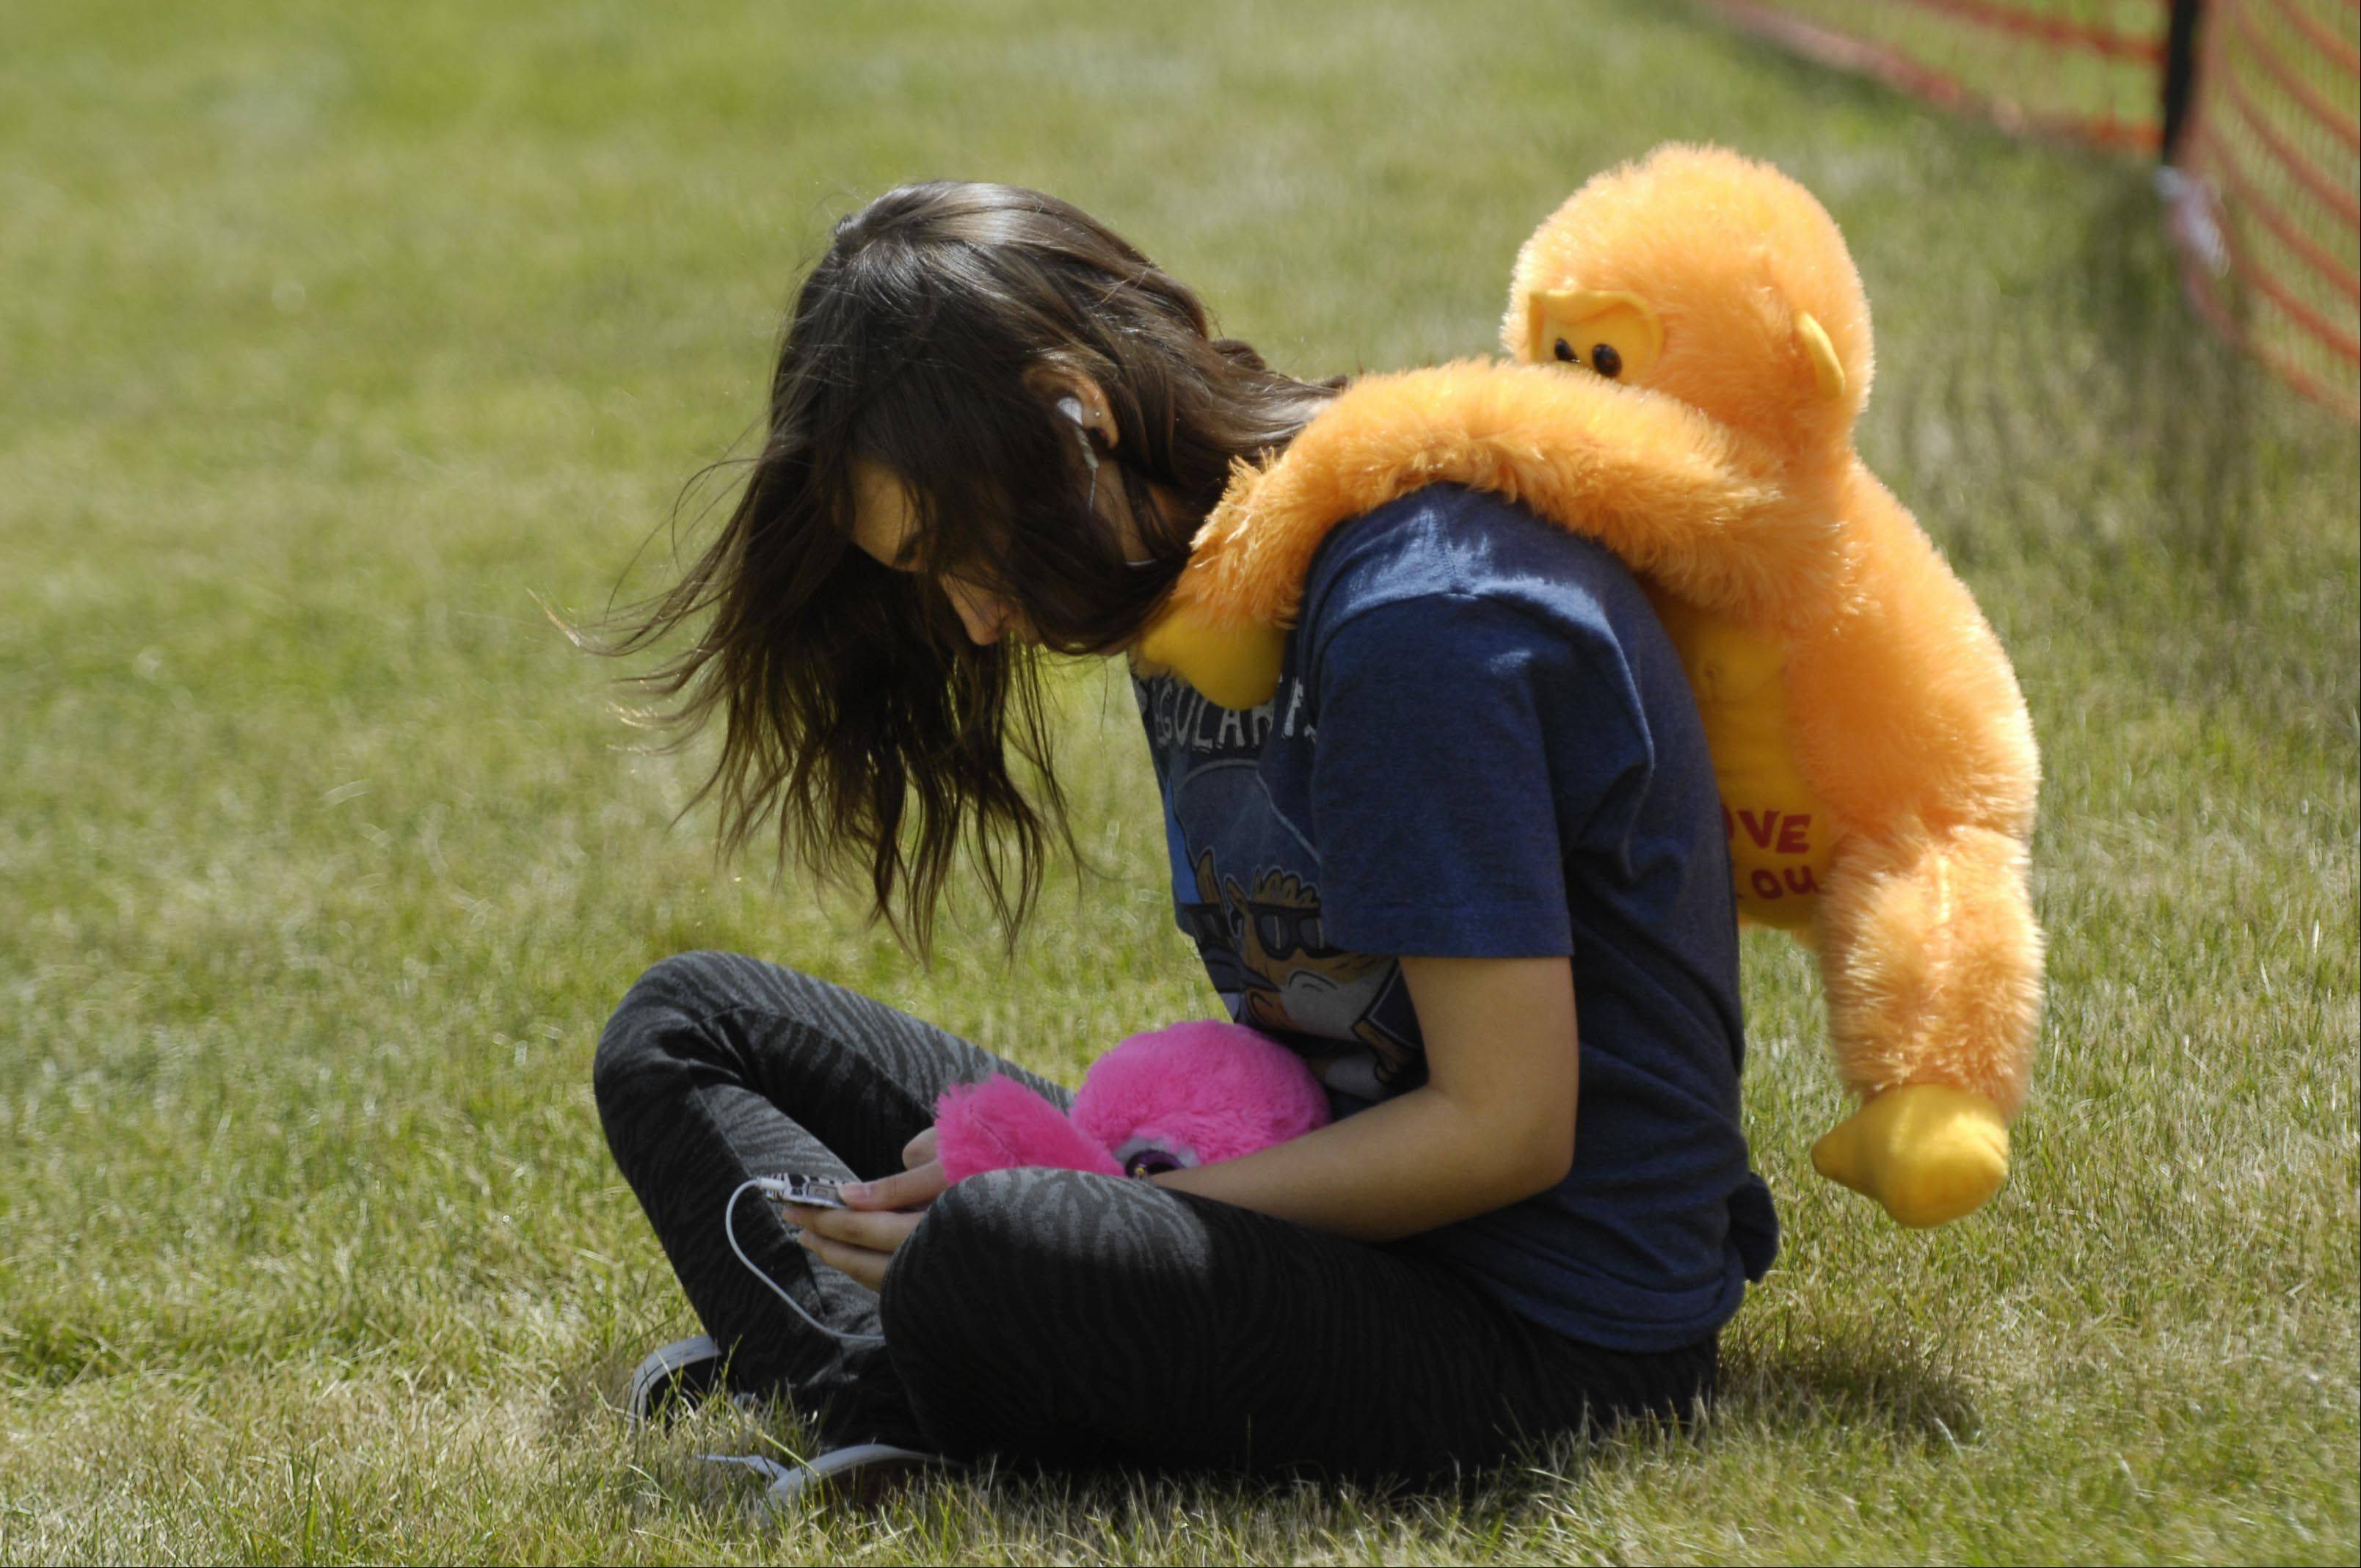 Ilma Skrgic, 16, waits with a monkey on her back for her younger sister, who was on the Yo-Yo ride at the final day of the Streamwood Summer Celebration in Hoover Grove Park on Irving Park Road Sunday.